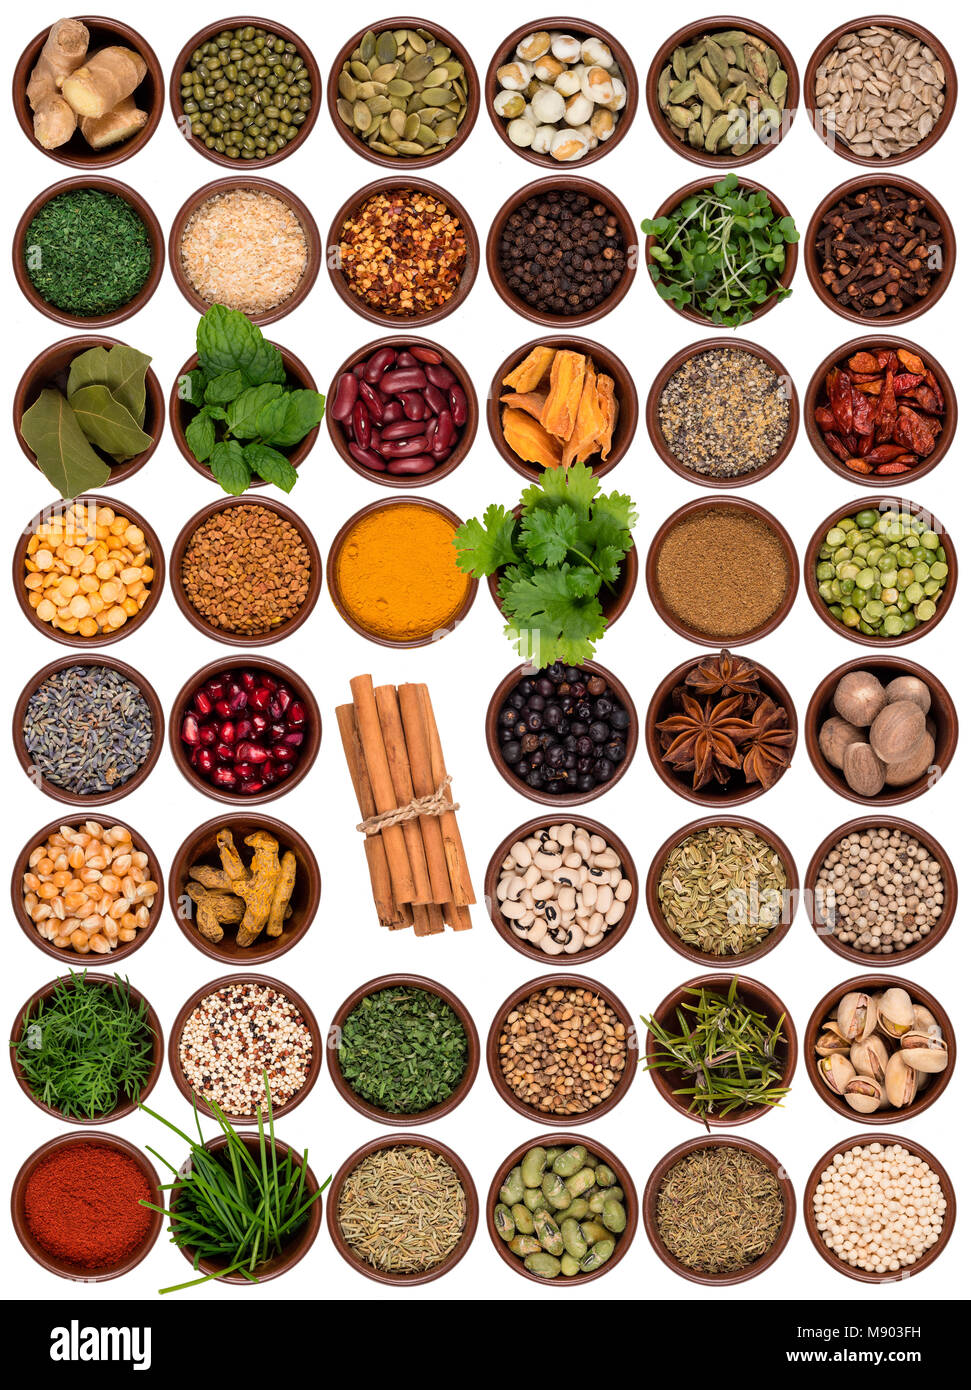 Selection of cooking ingredients to add flavor and seasoning. - Stock Image